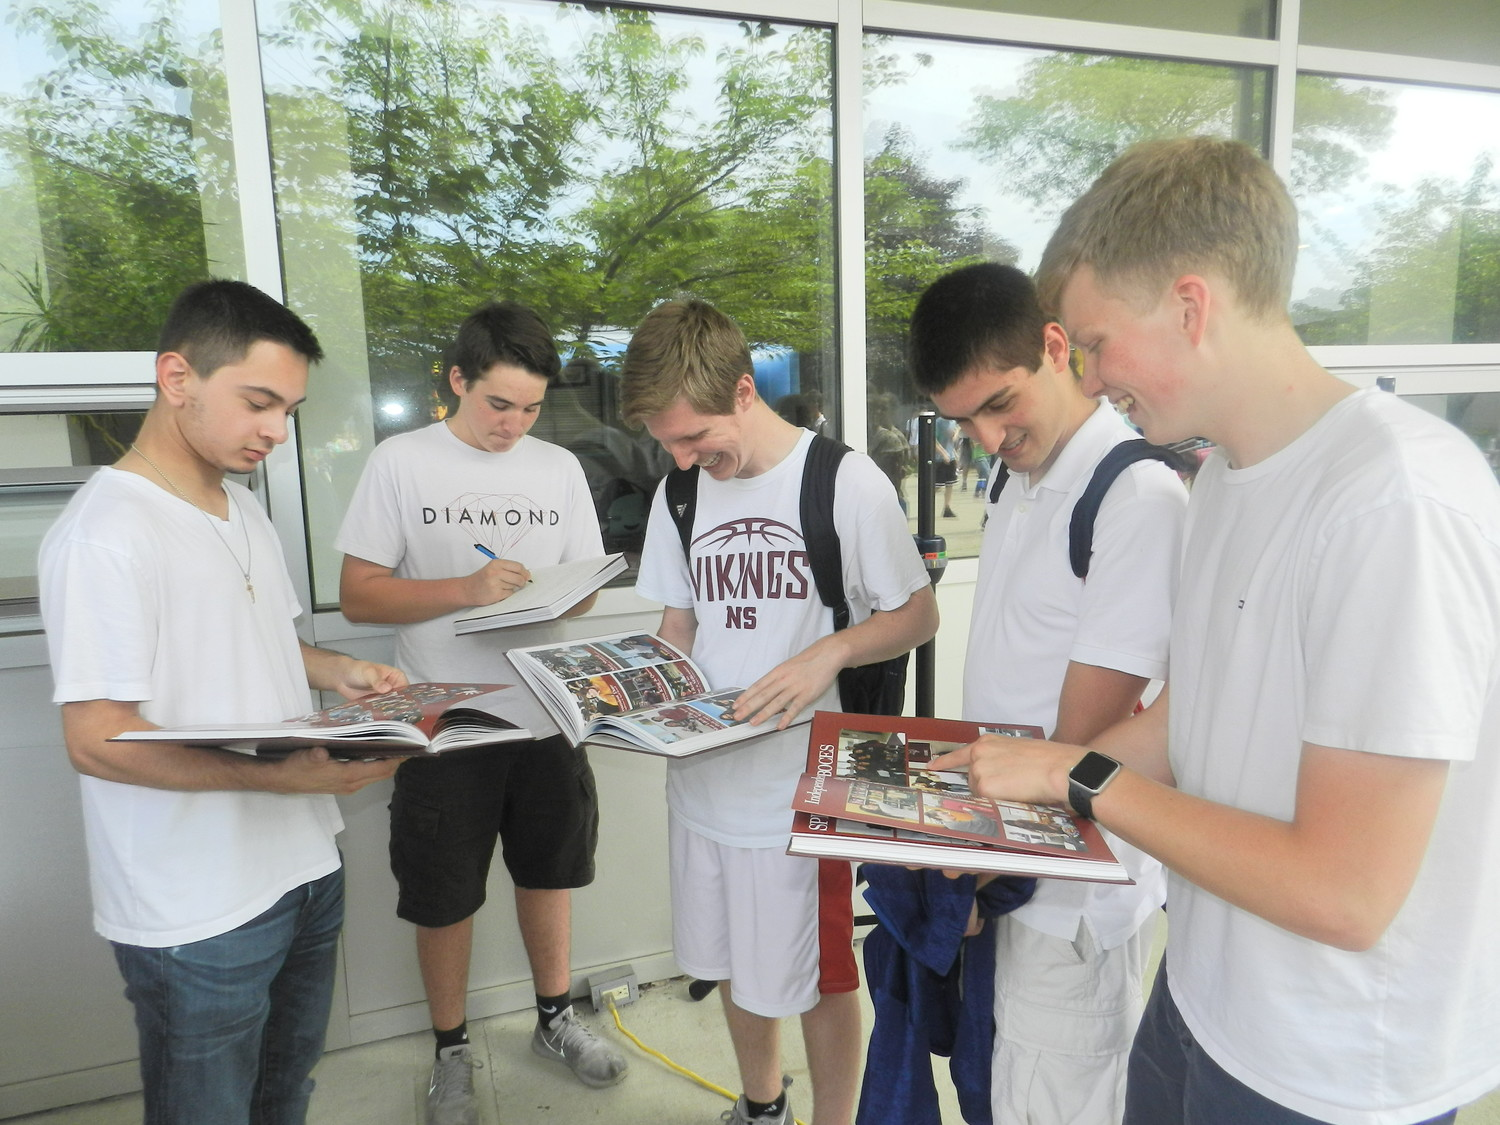 Graduating seniors Jacob Moran, left, Eric Rubenacker, Eric Lynch, Scott Klein and Jack Stalzer took a moment to reflect on their time at North Shore as they signed each other's yearbooks.